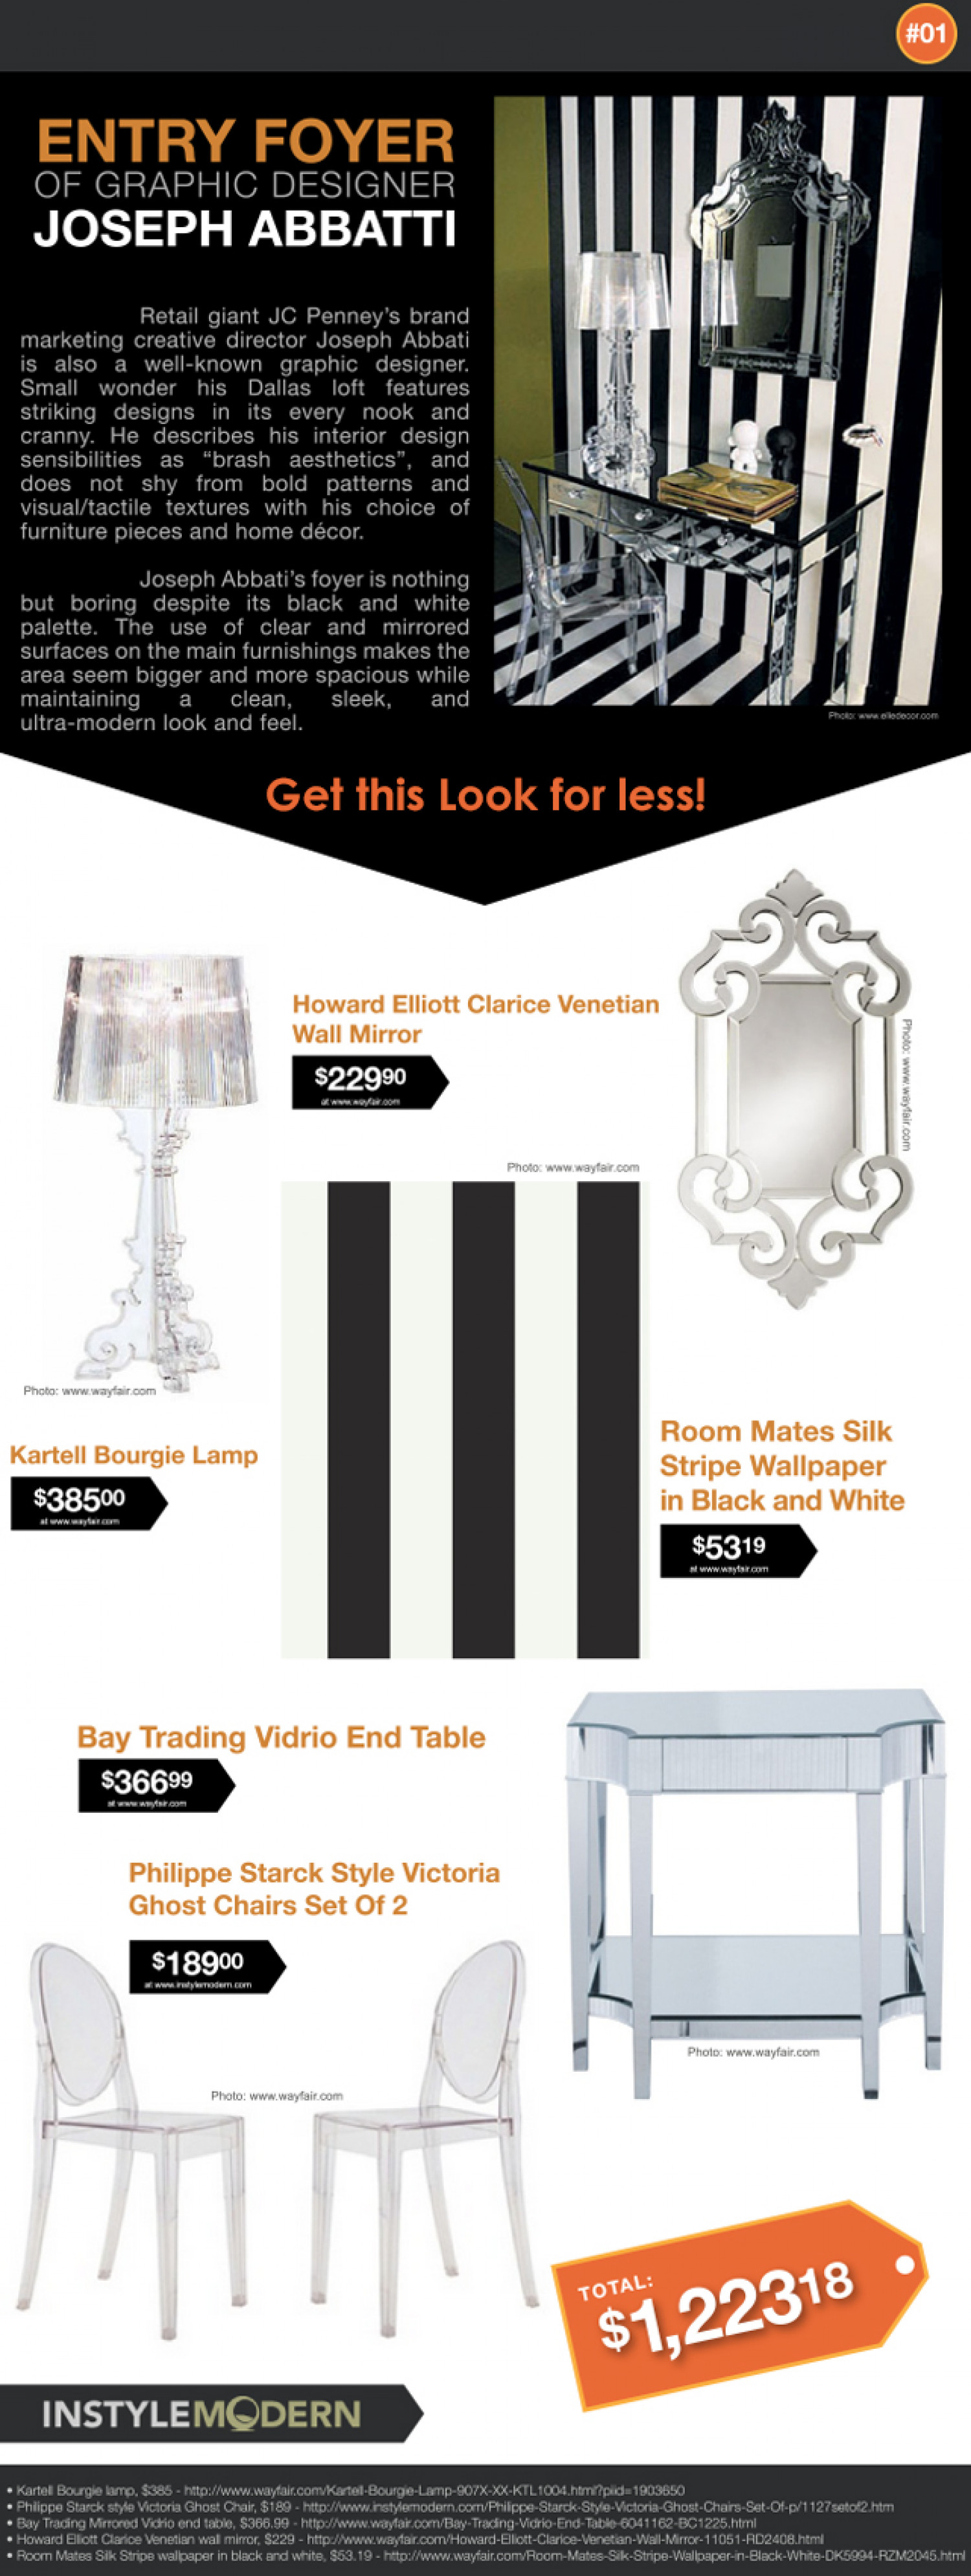 Get That Look - Joseph Abbatti's Entry Foyer Infographic